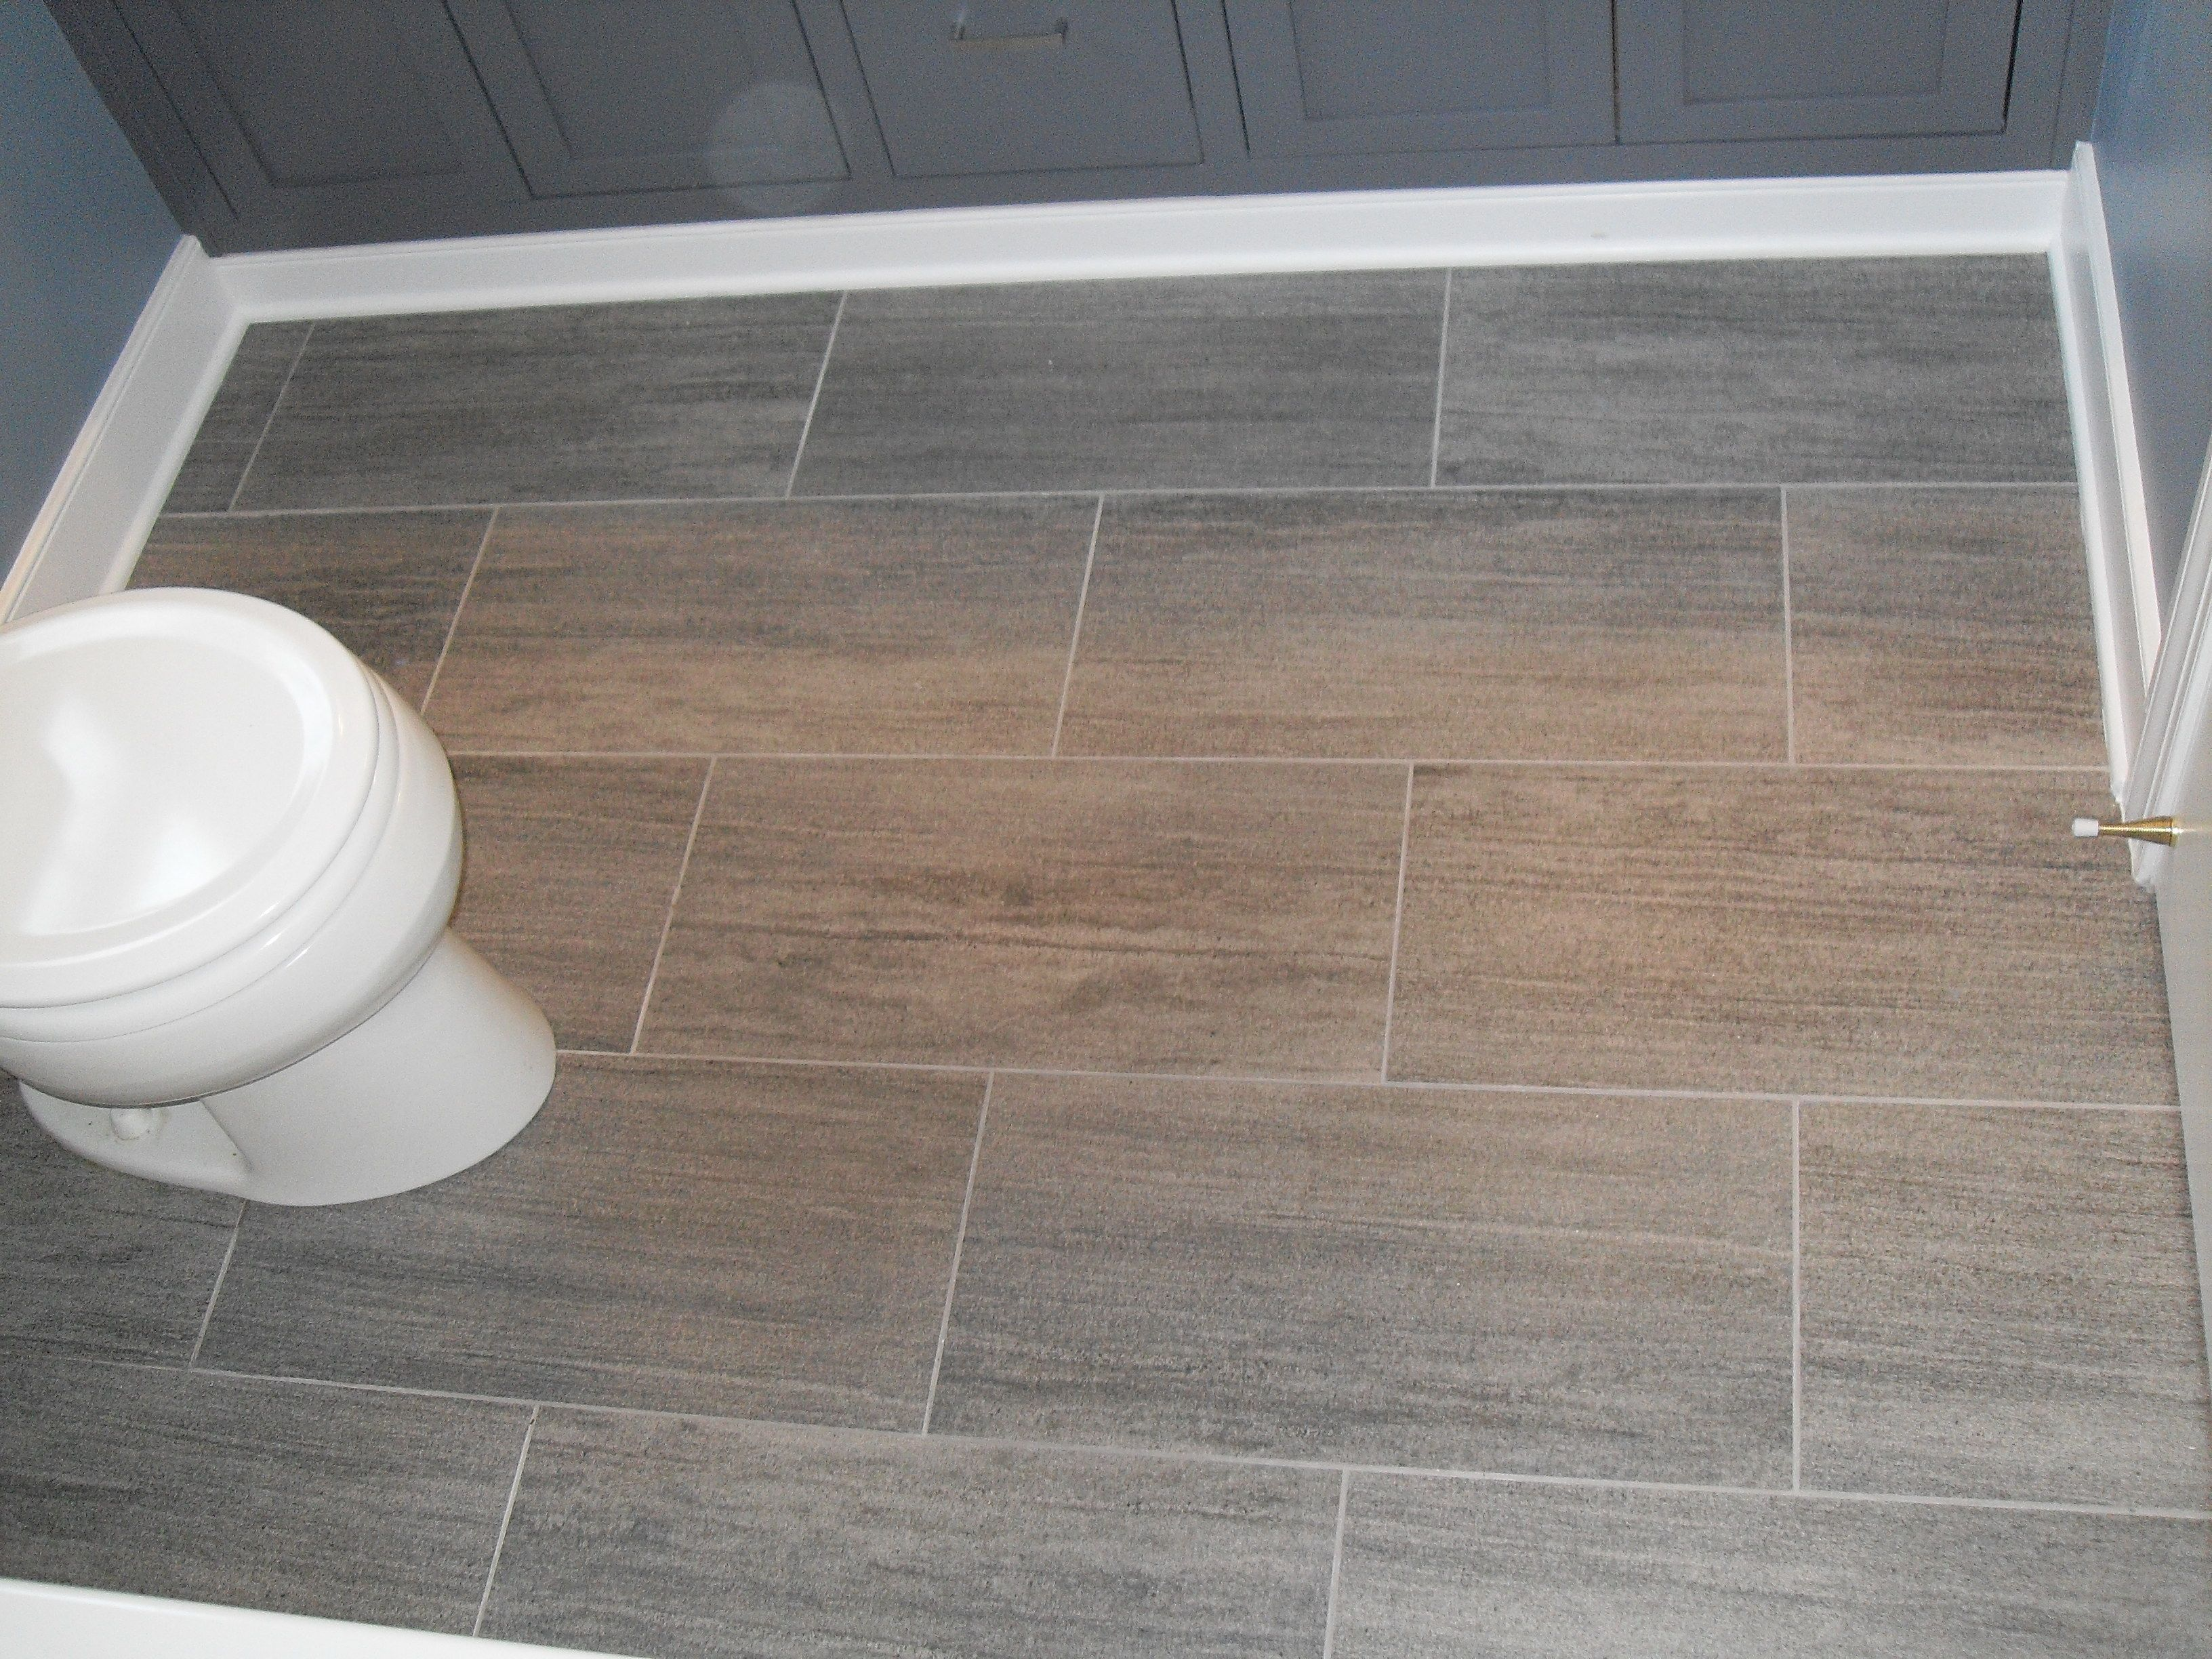 Best Kitchen Gallery: Easy To Keep Clean Similar To Drift Wood In Tone Large Tile For of Bathroom Tile Floor Designs  on rachelxblog.com